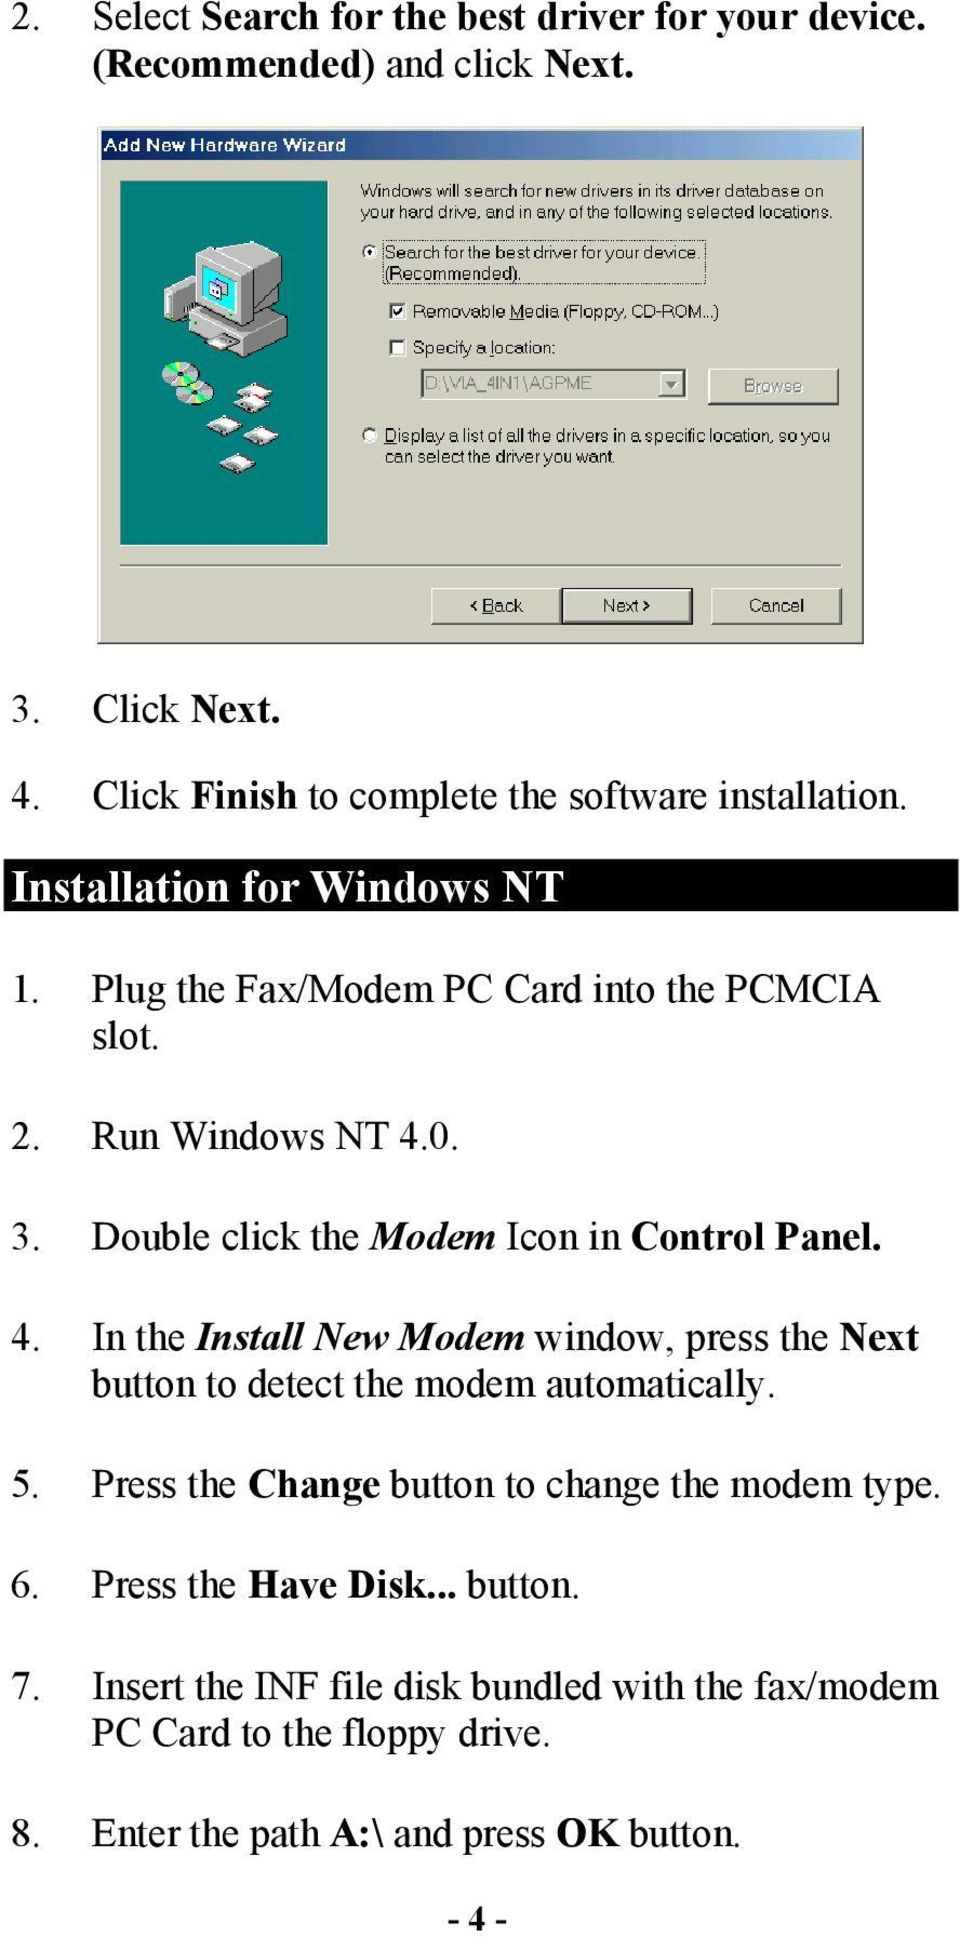 0. 3. Double click the Modem Icon in Control Panel. 4. In the Install New Modem window, press the Next button to detect the modem automatically. 5.